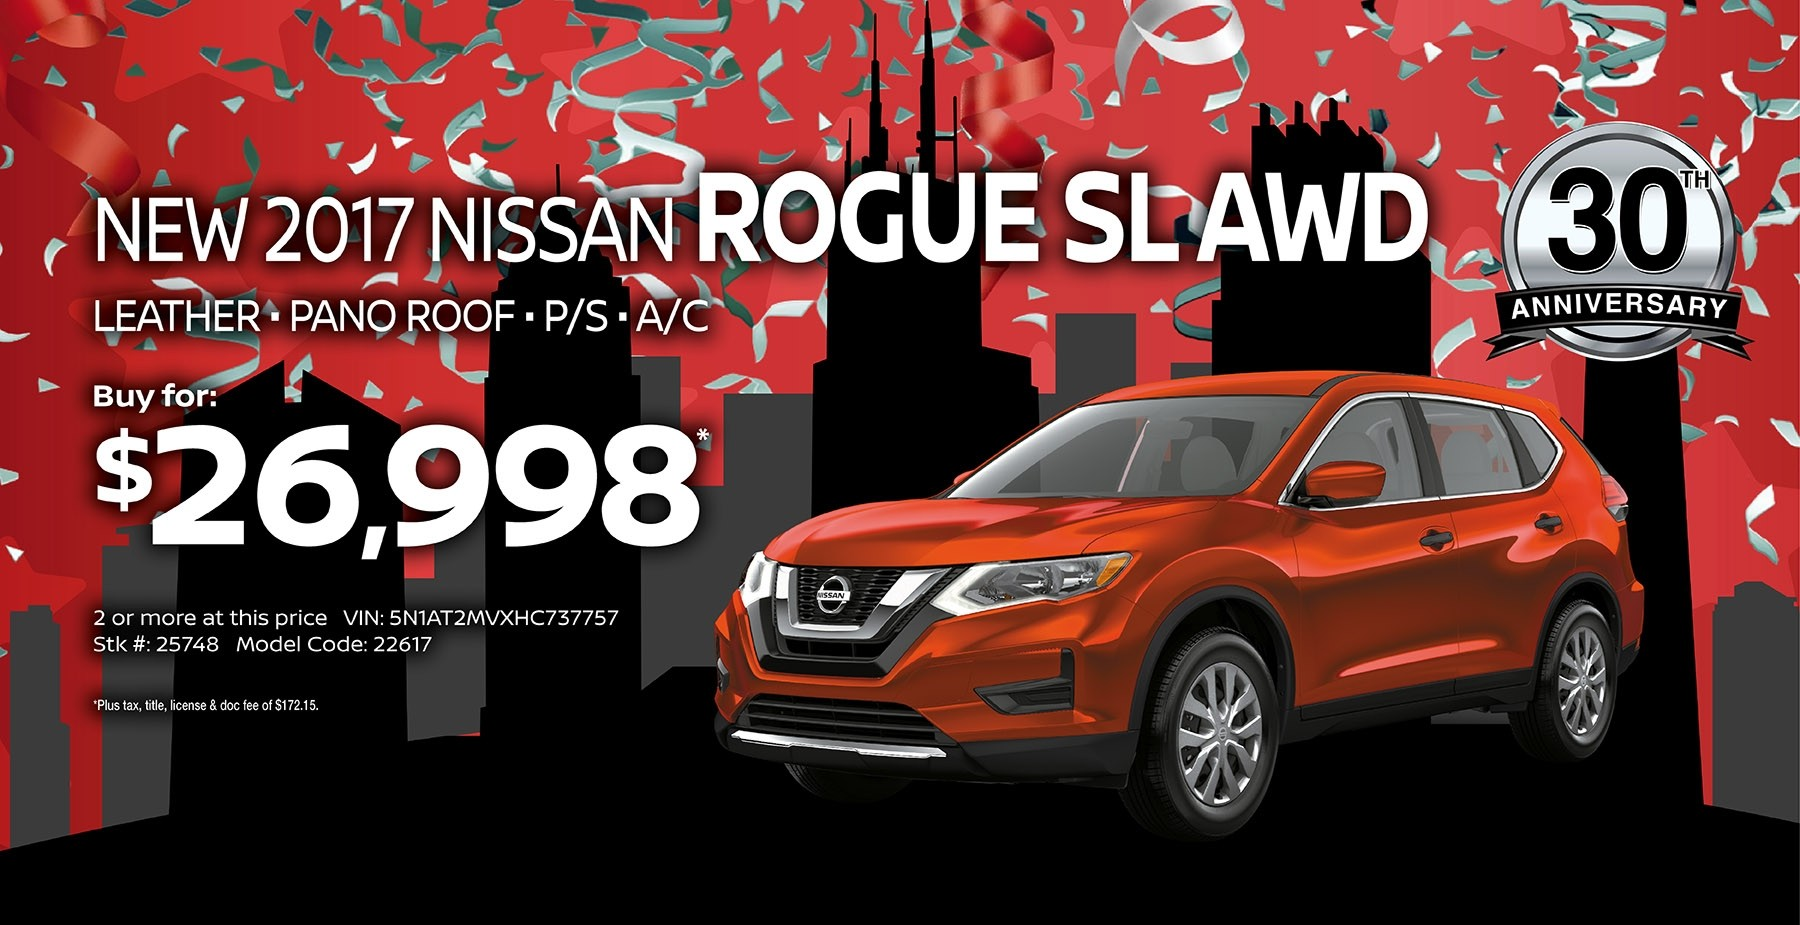 2017 Nissan Rogue September Sale at Star Nissan